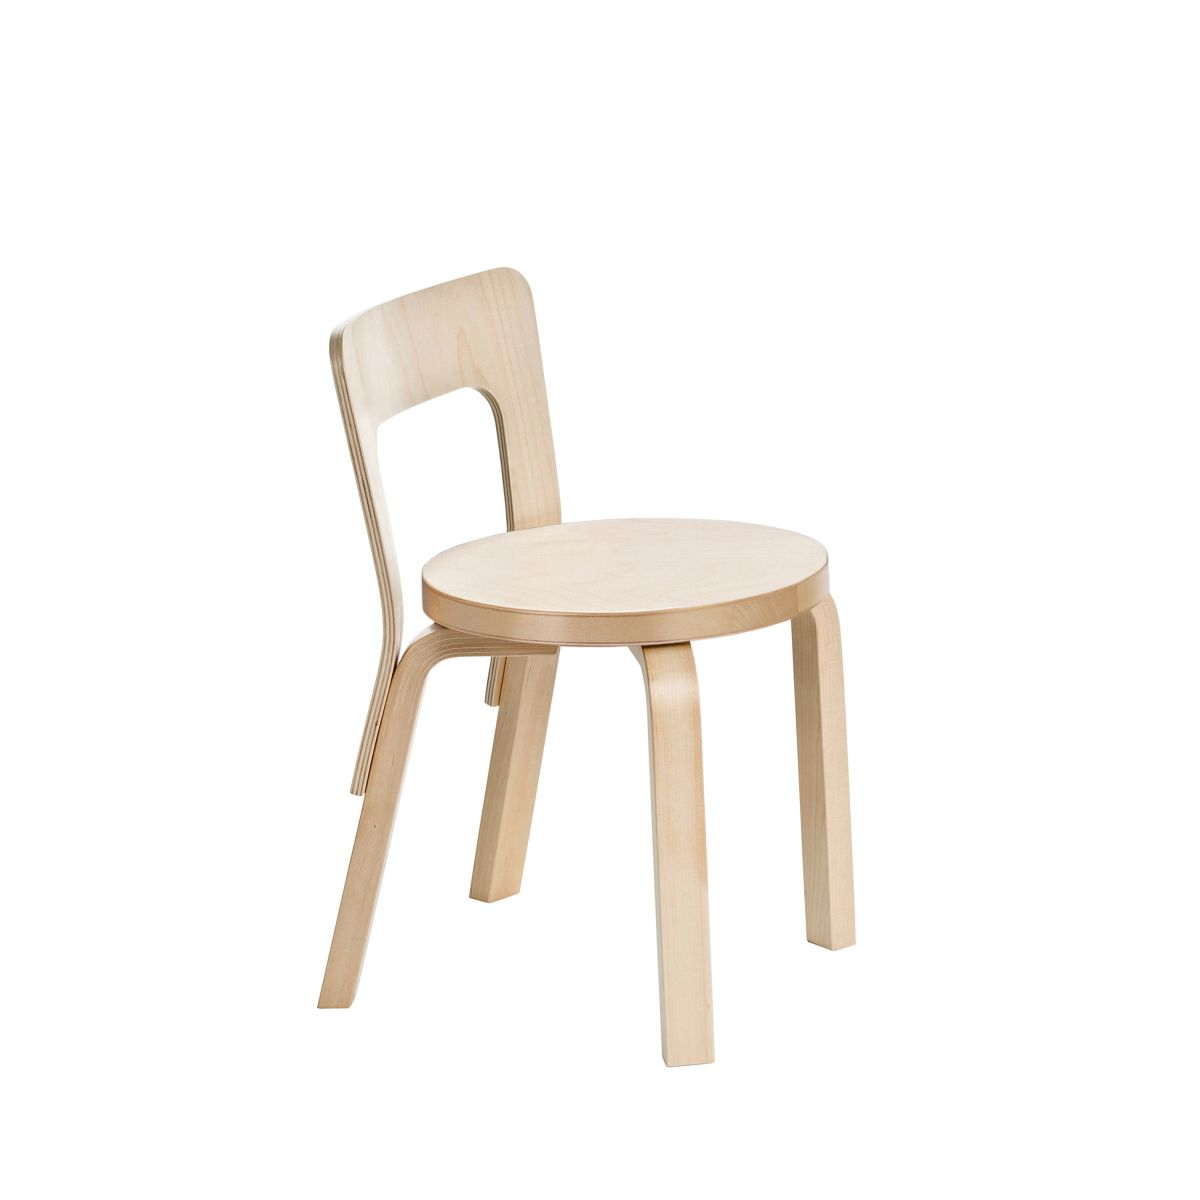 Children's Chair N65 legs birch_seat birch